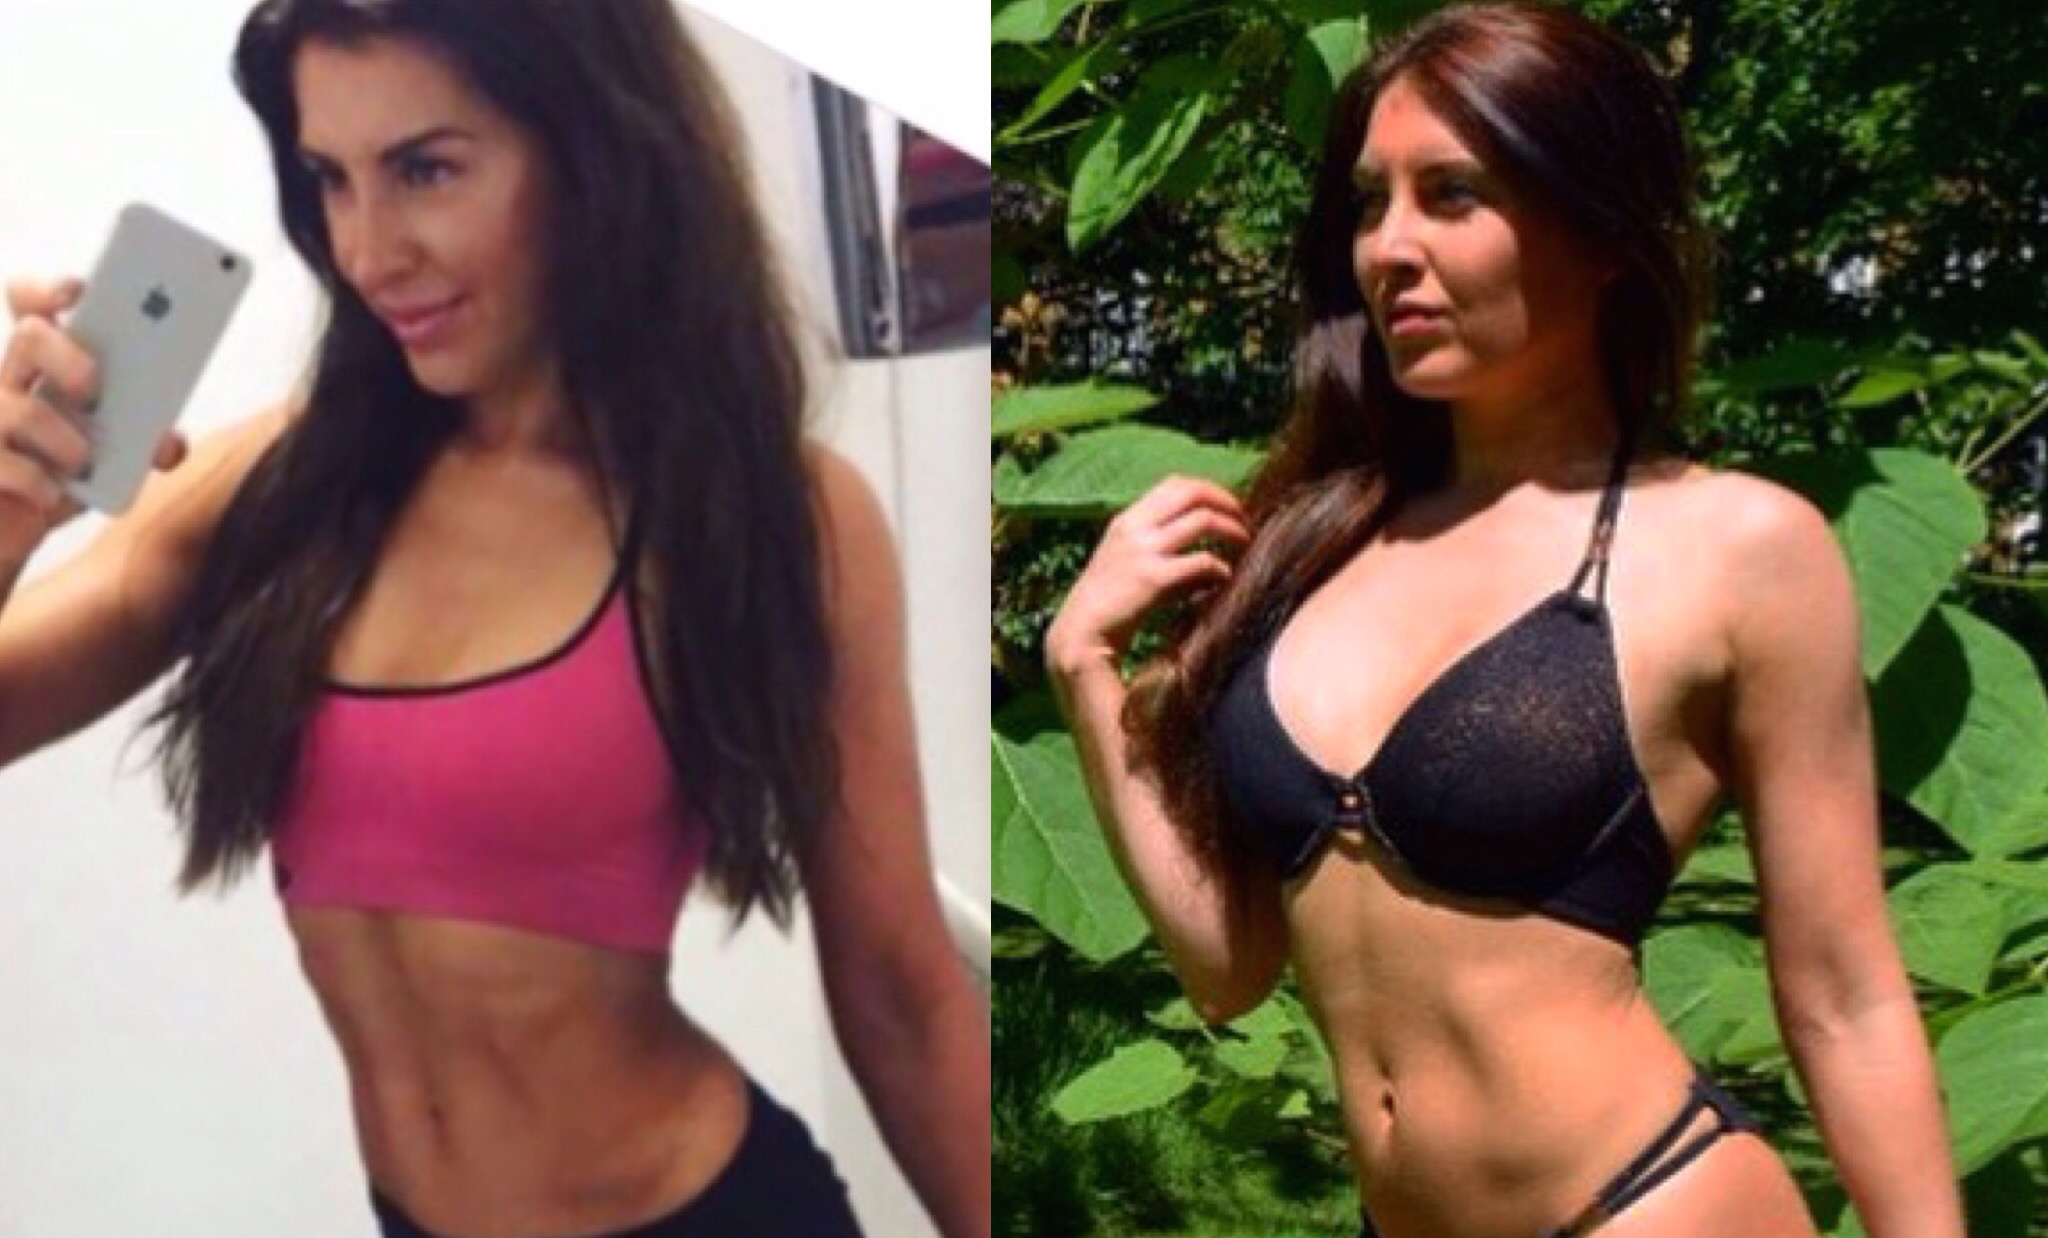 becoming-body-confident-by-bikini-girls-diary-transformation-vicky-hadley.jpg